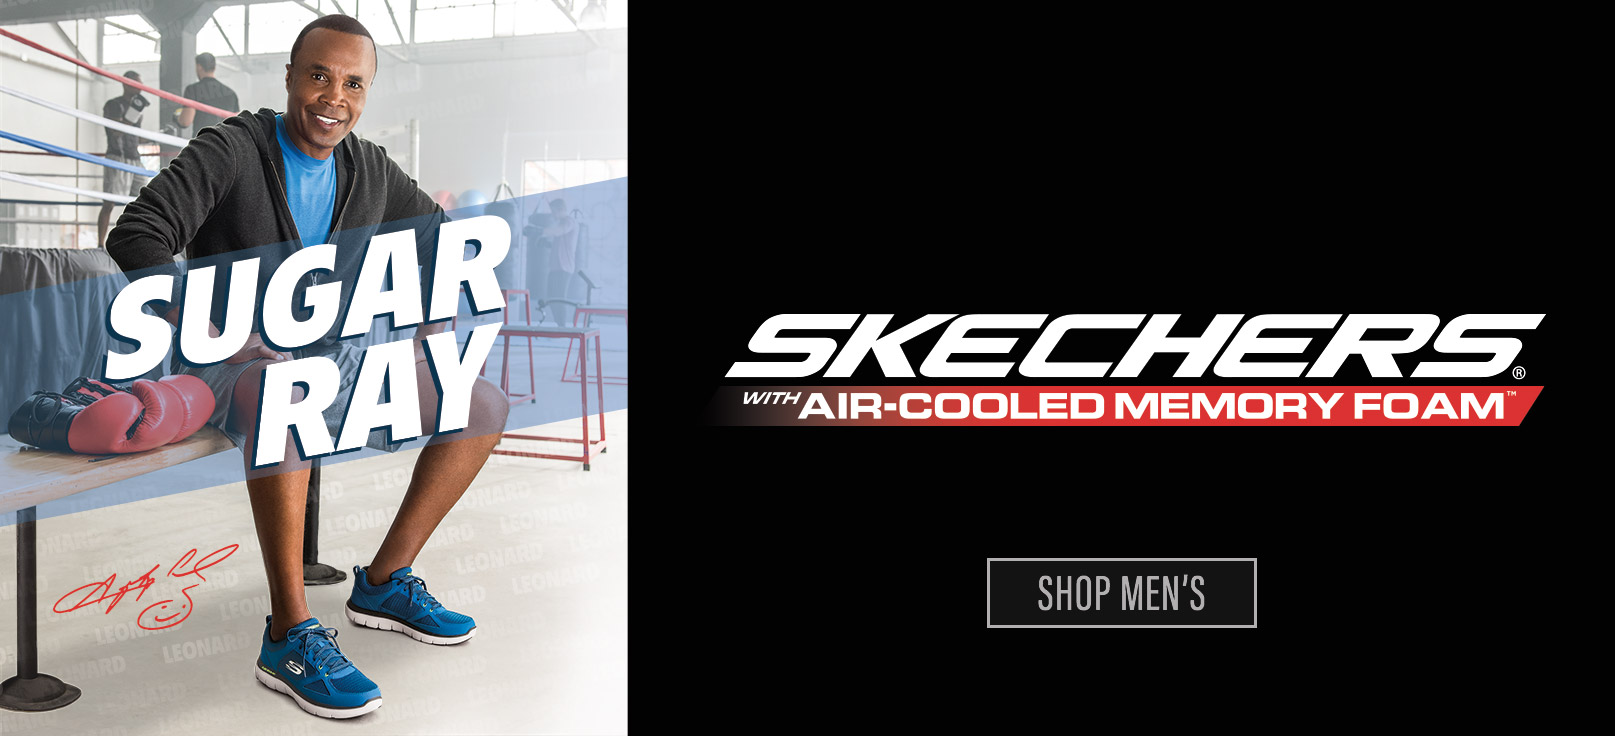 Shop for Men's Skechers Shoes, Boots, and Sandals including Skechers Burst, GOwalk, Relaxed Fit and Memory Foam.  All sizes and widths available.